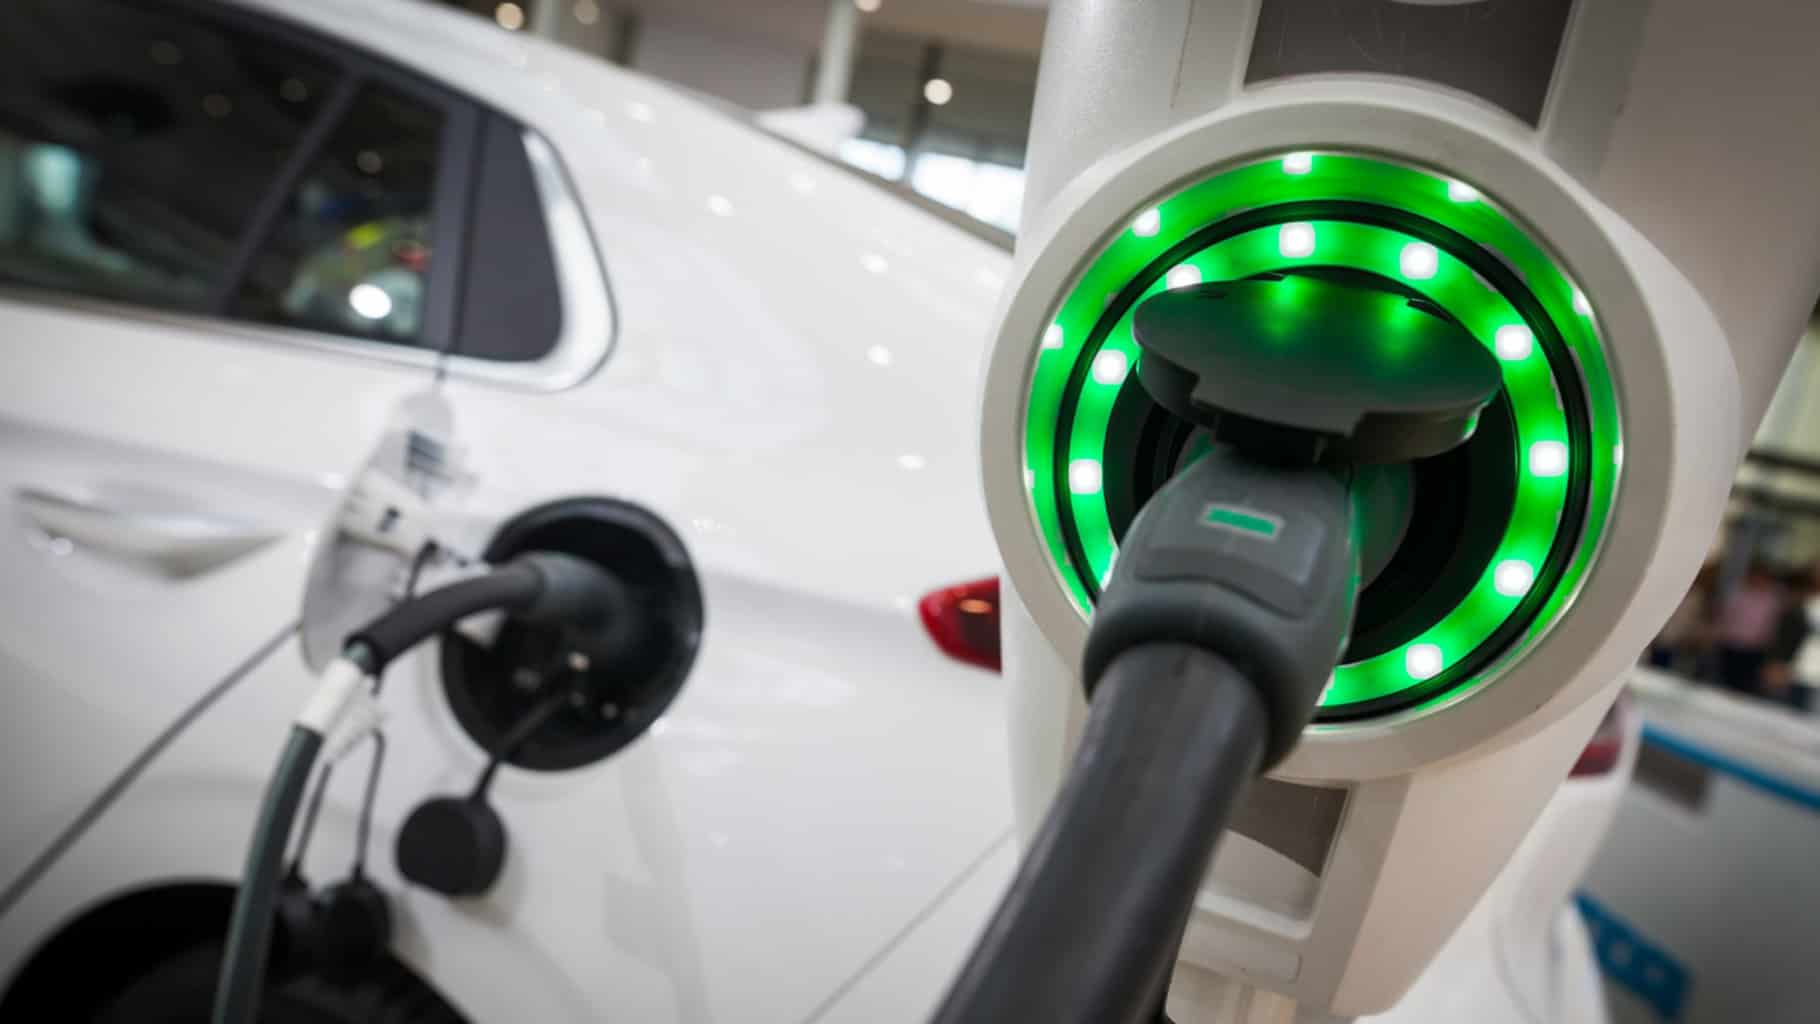 Shortening charging cycles of electric vehicles is key to increasing adoption (Photo: Twitter/ZapandGo)